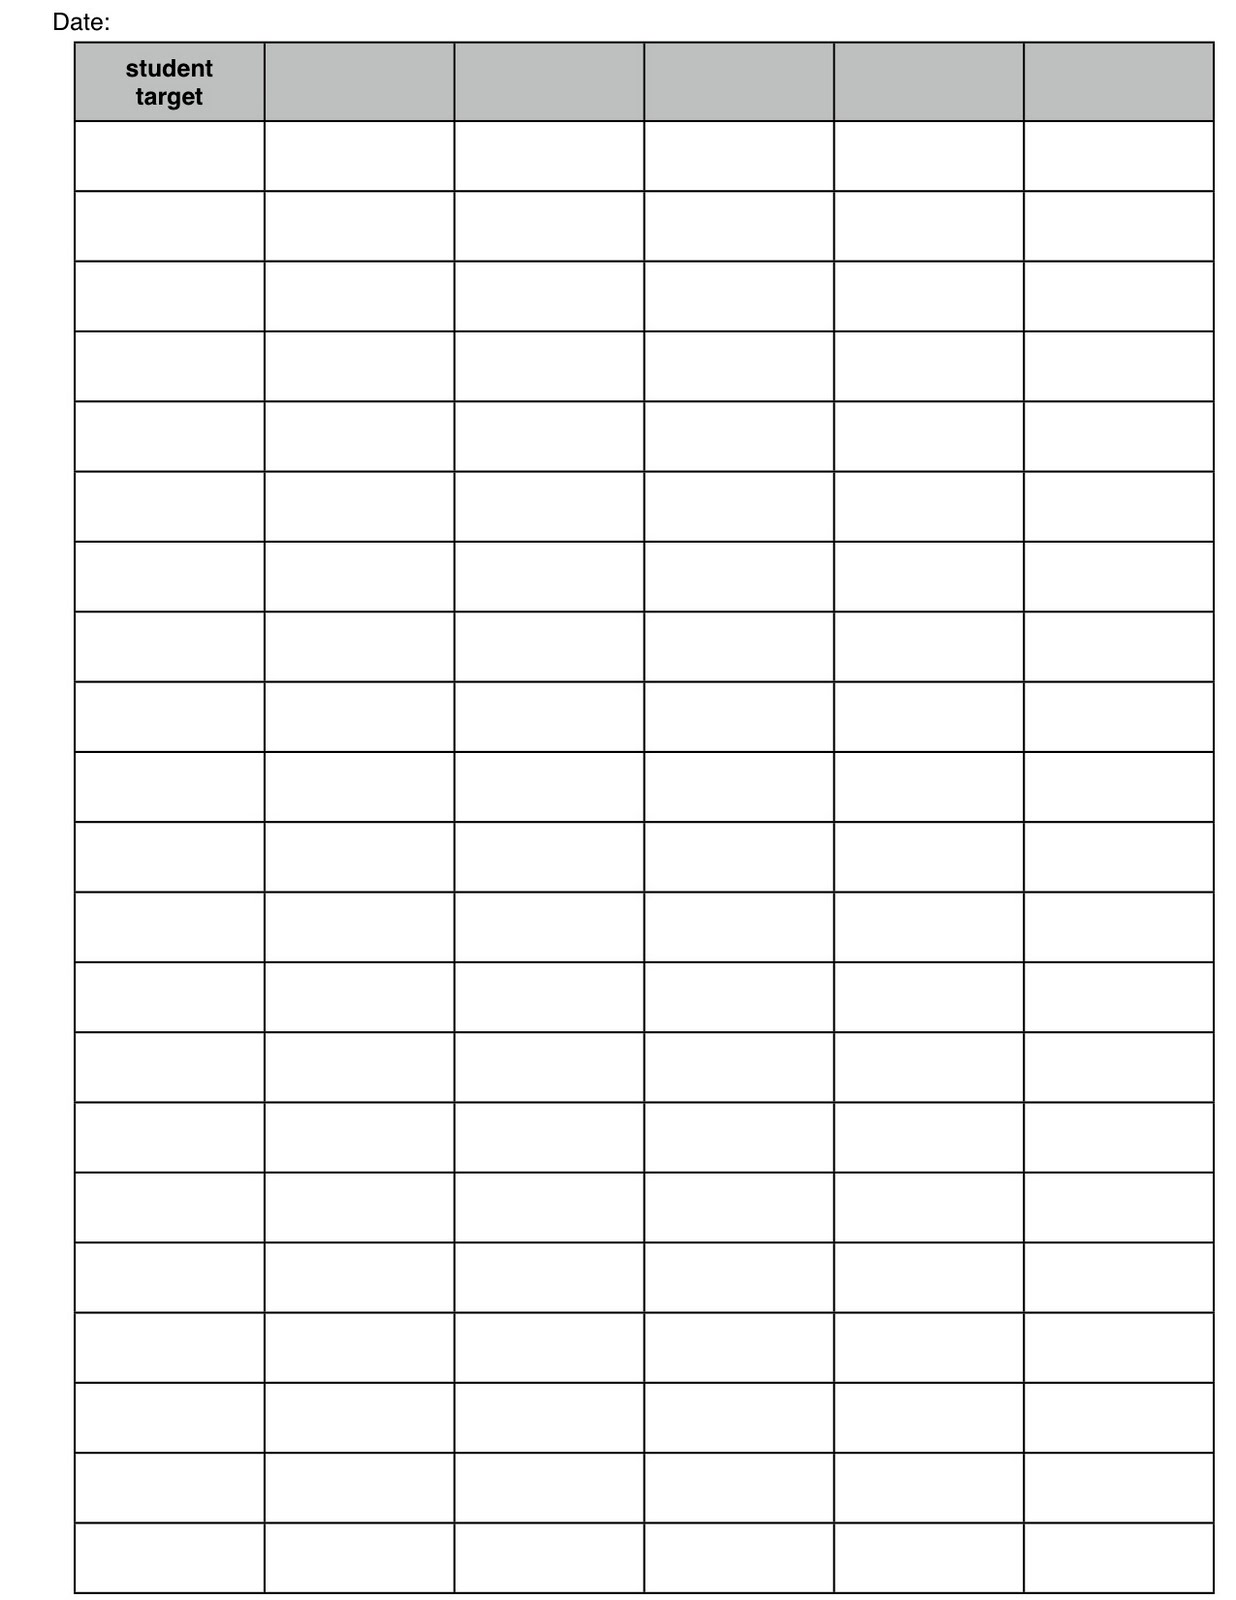 Template To Assess Elementary Students Monthly